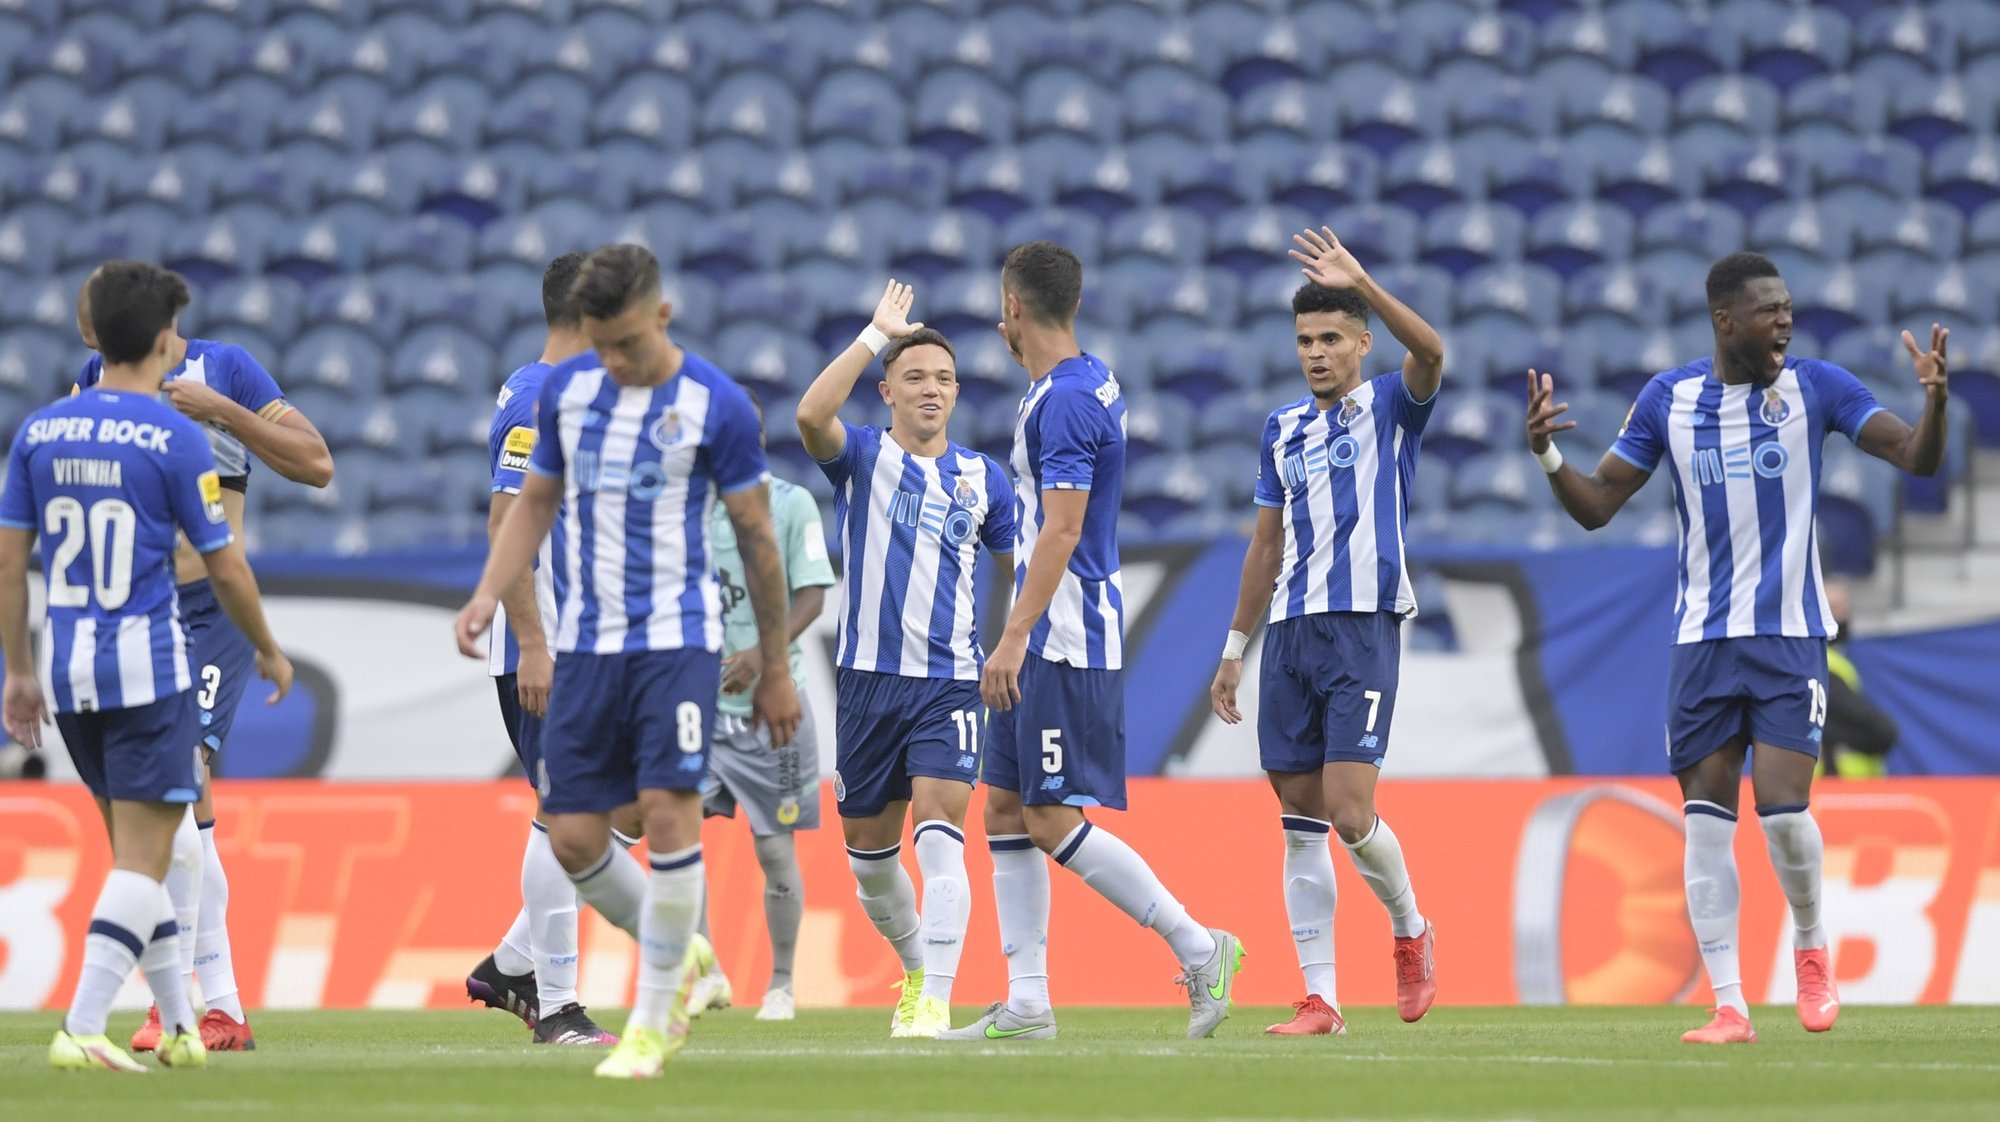 FC Porto's players celebrate a goal scored to Arouca, during their Portuguese First League soccer match held at Dragao stadium in Porto, northwest of Portugal, 28 august 2021. FERNANDO VELUDO/LUSA